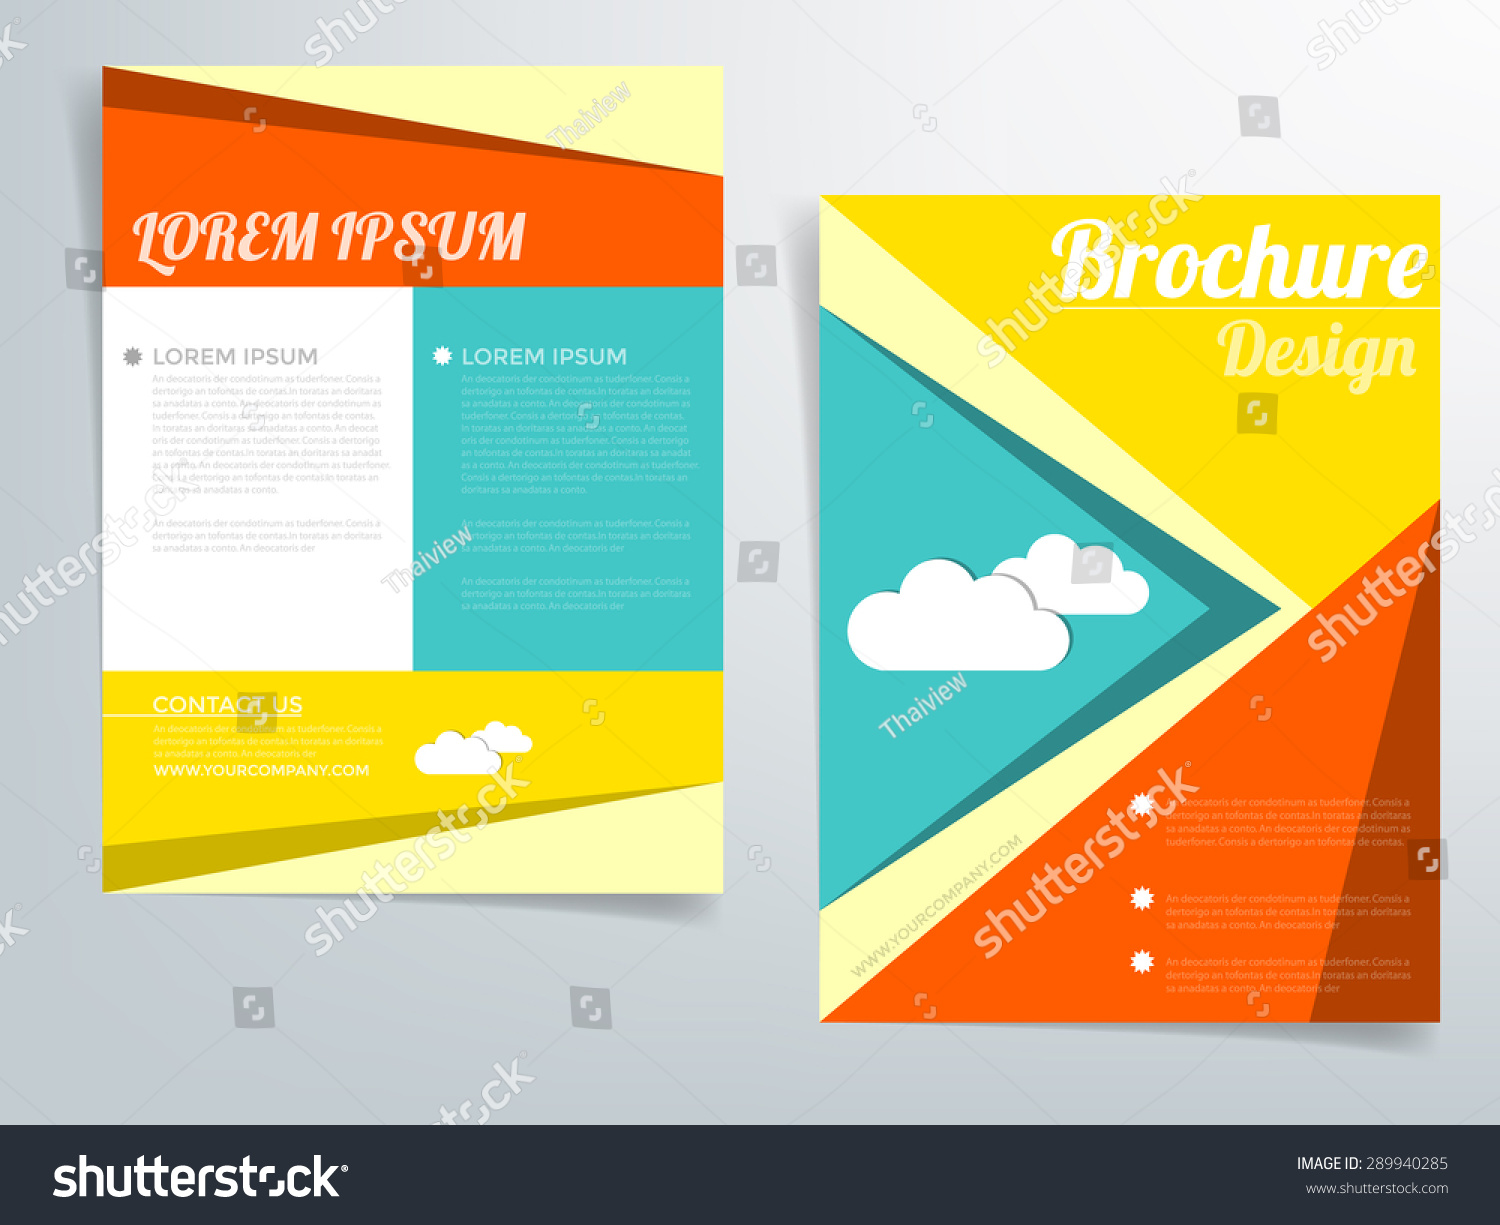 Brochure template vector background flyer design stock for Colorful brochure templates